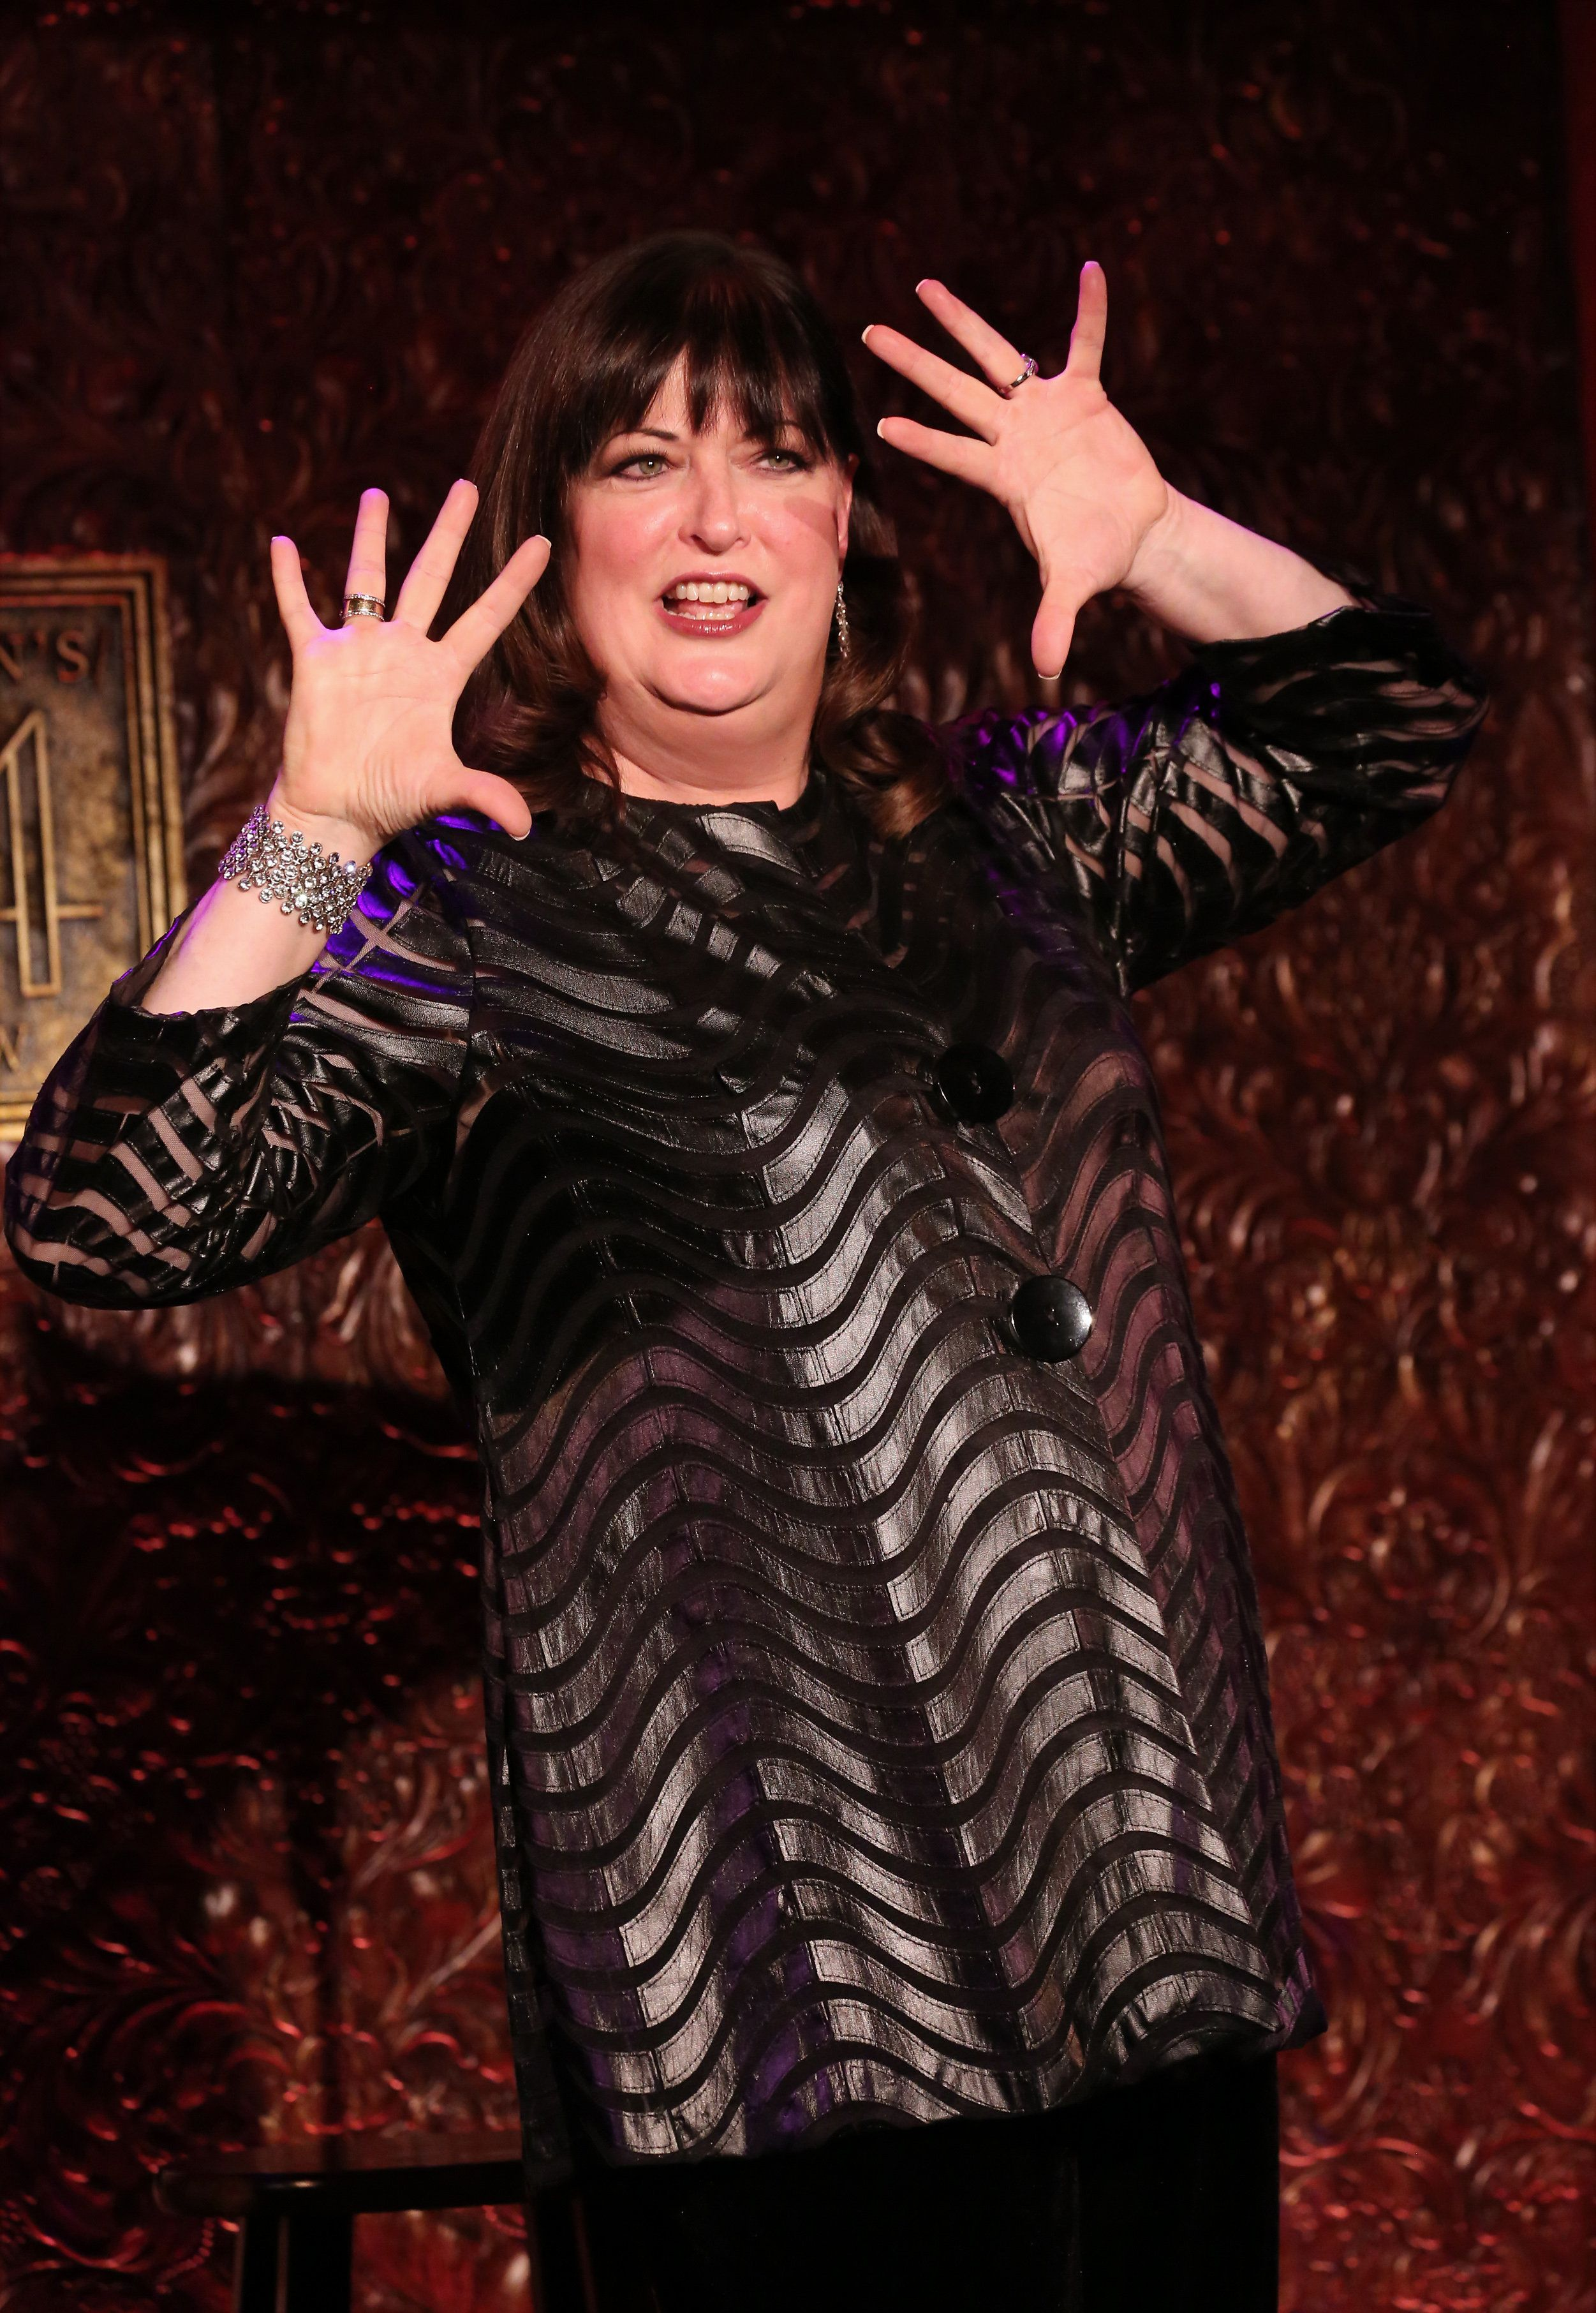 NEW YORK, NY - NOVEMBER 20:  Ann Hampton Callaway previews her new show 'Feminine Persuasion' at the Feinstein's/54 Below on November 20, 2015 in New York City.  (Photo by Walter McBride/Getty Images)